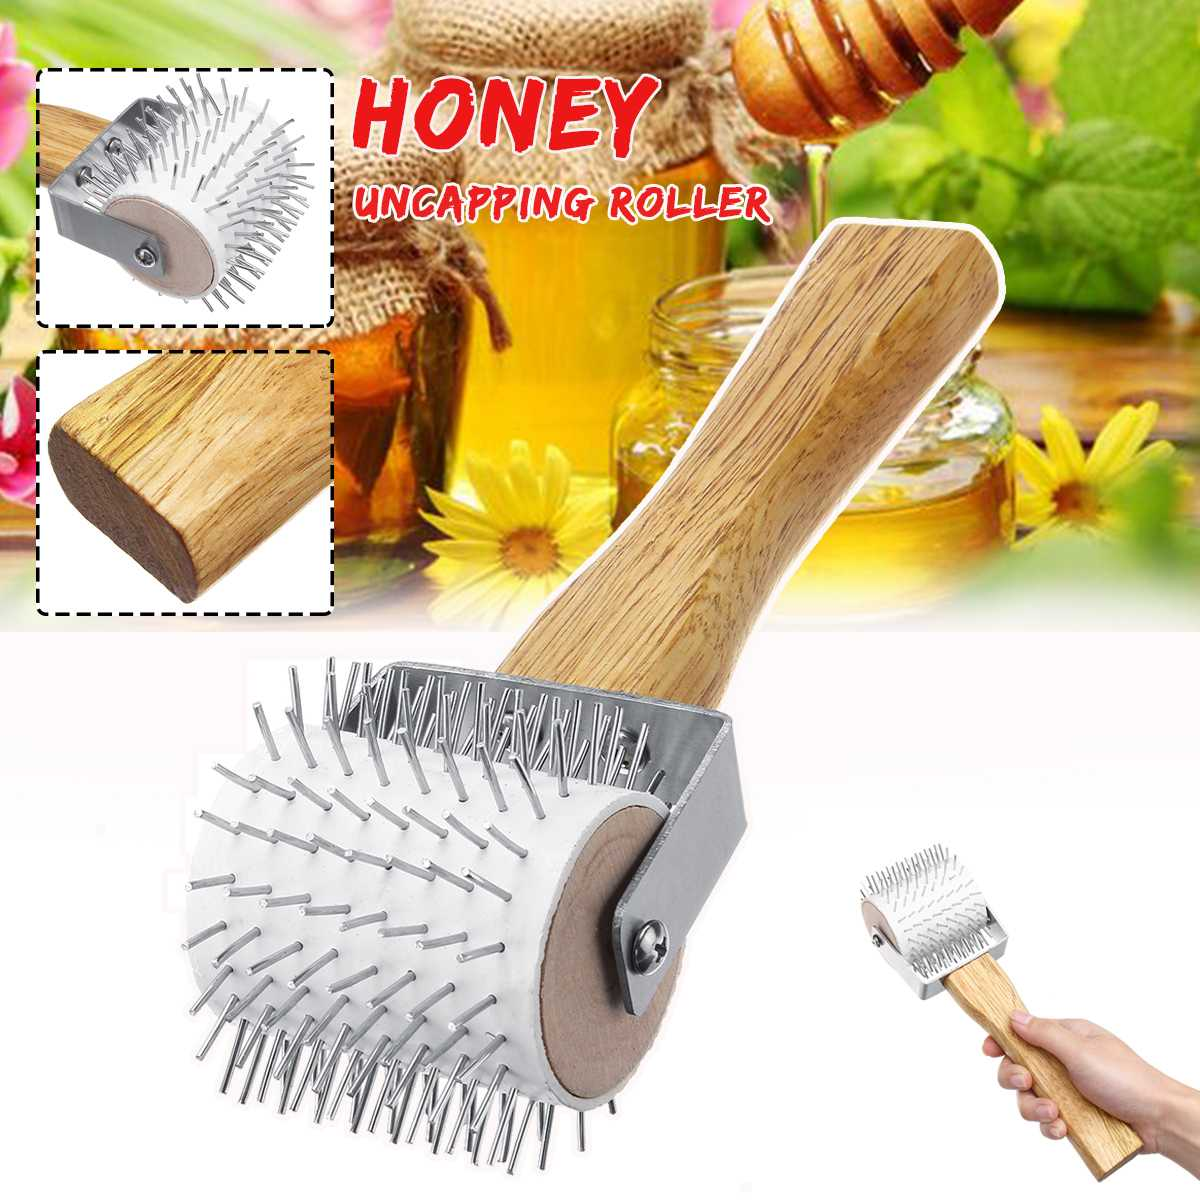 Pro/'s Choice Best Honeycomb Uncapping Plastic Needle Roller  With Wooden handle.